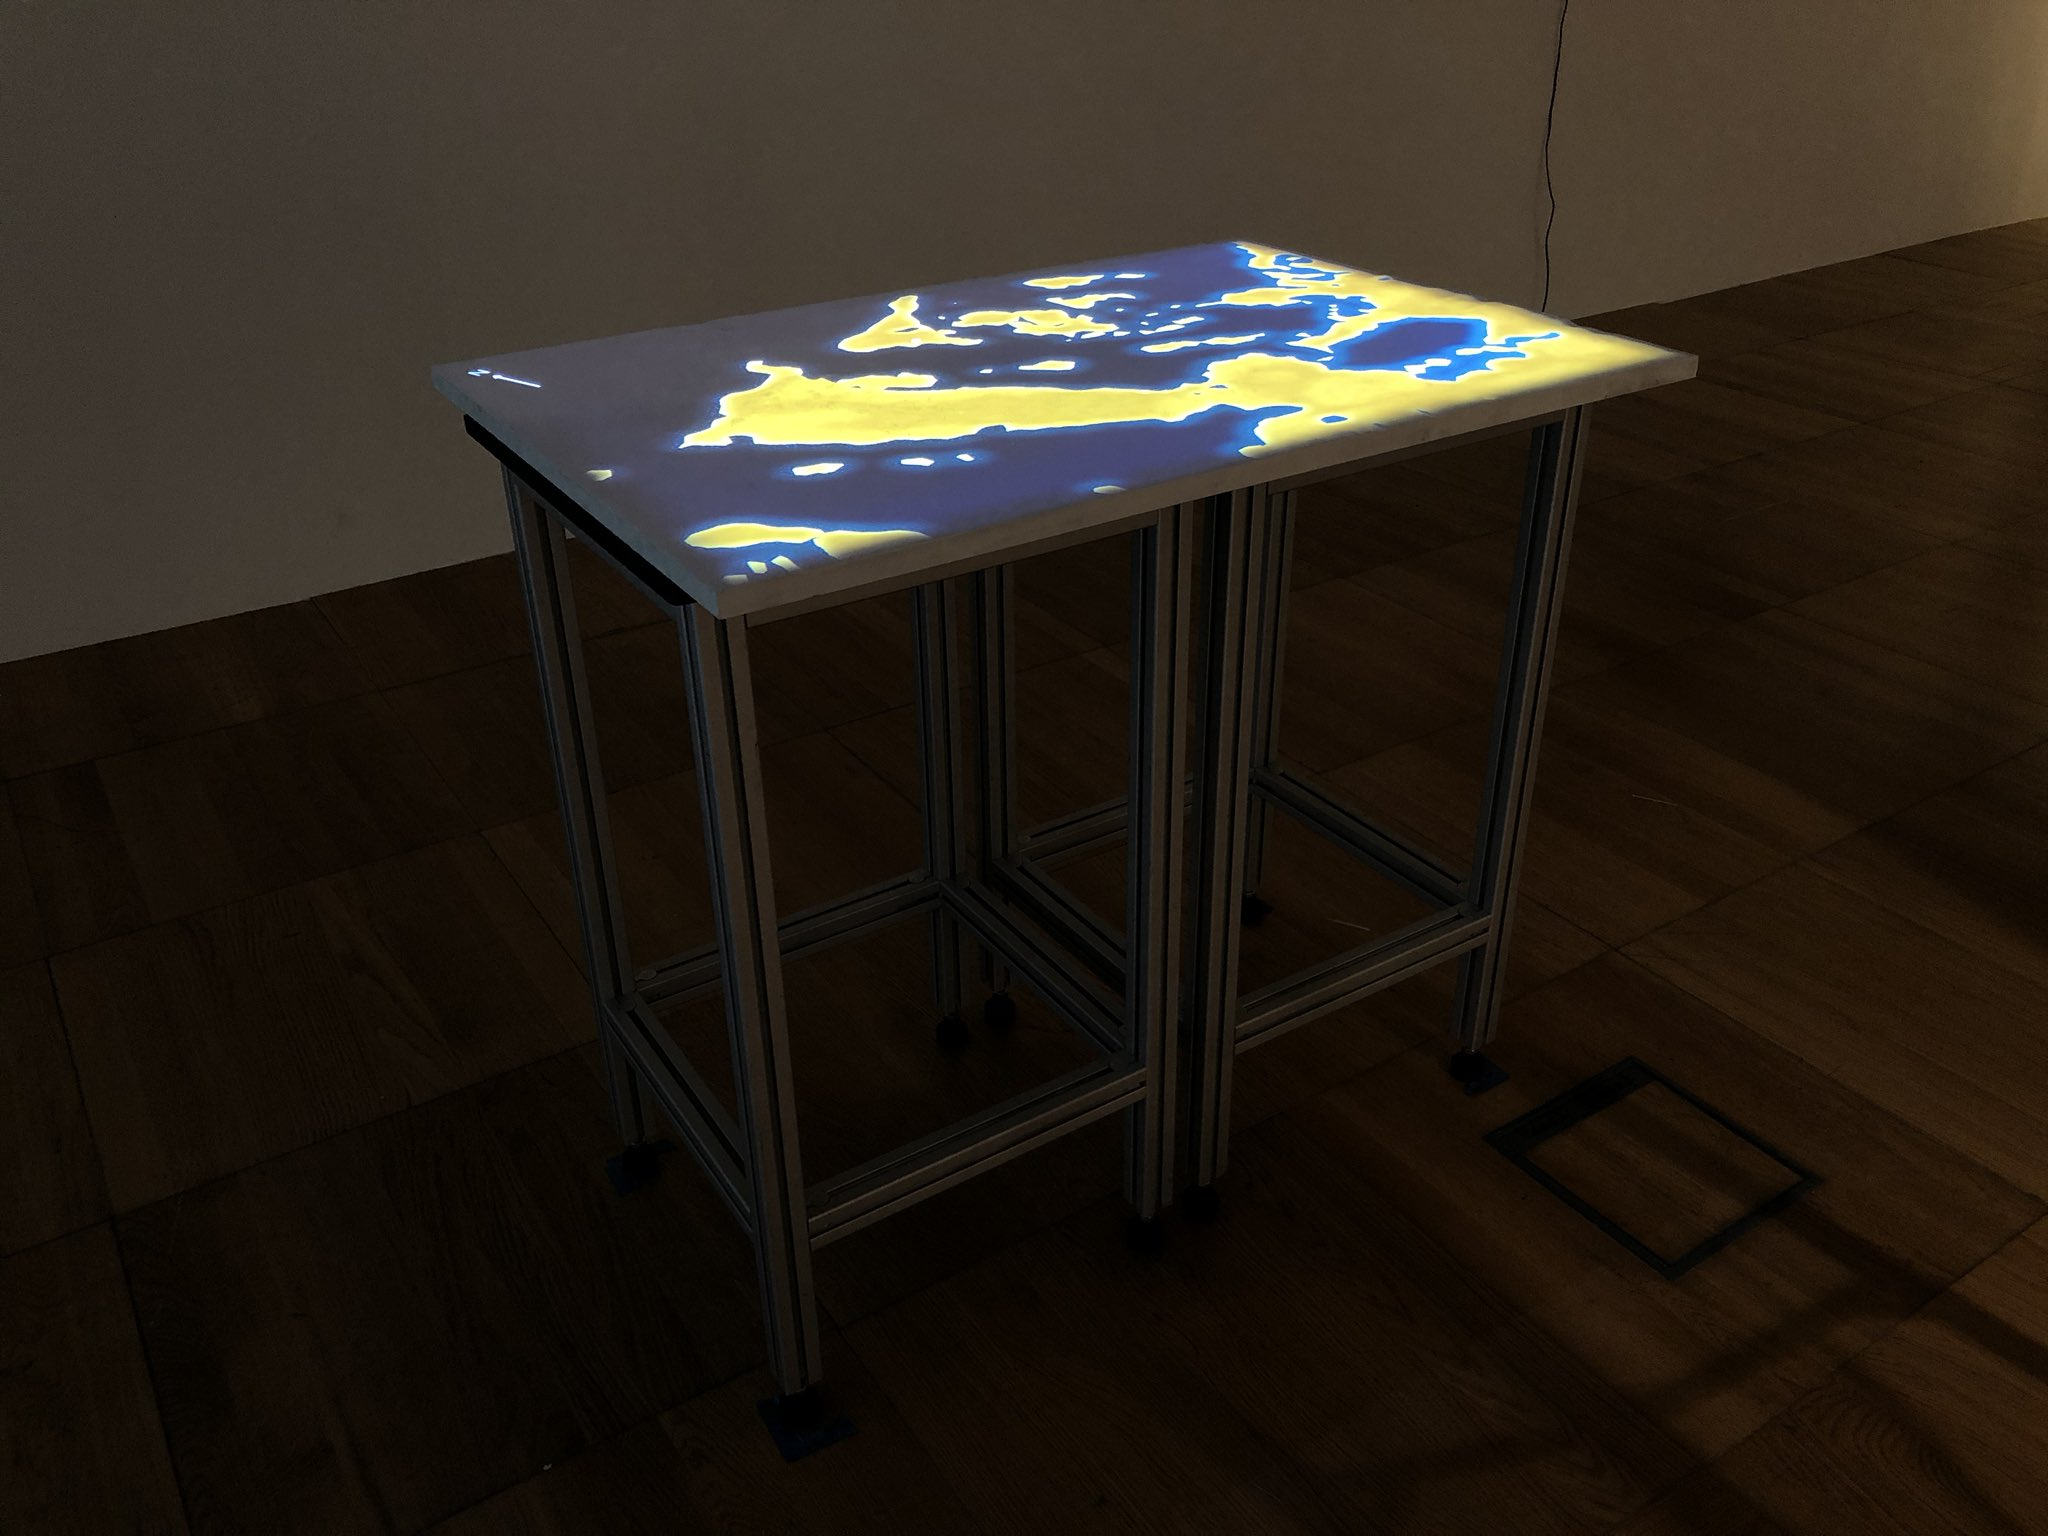 Sealevel Change Abu Dhabi